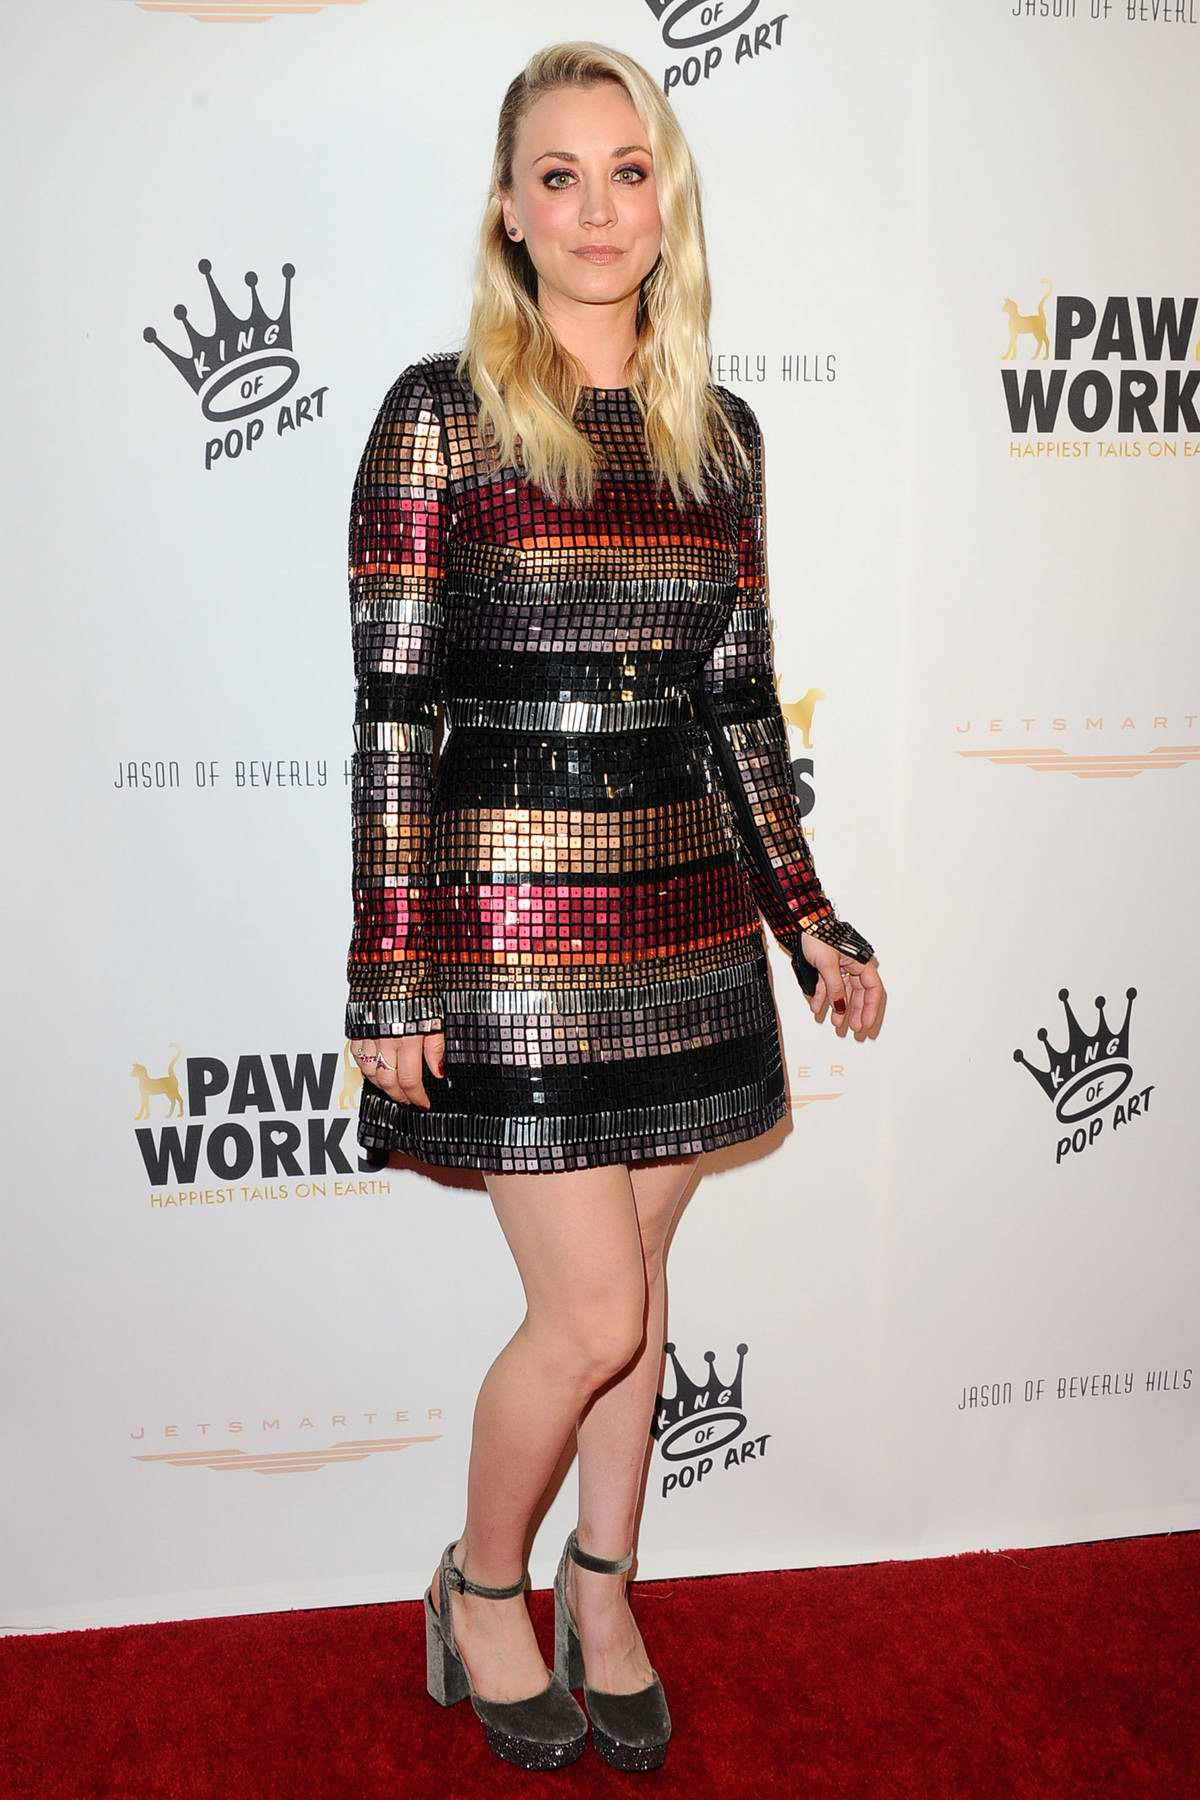 Kaley Cuoco attends James Paw 007 Ties & Tails Gala in Westlake Village, California